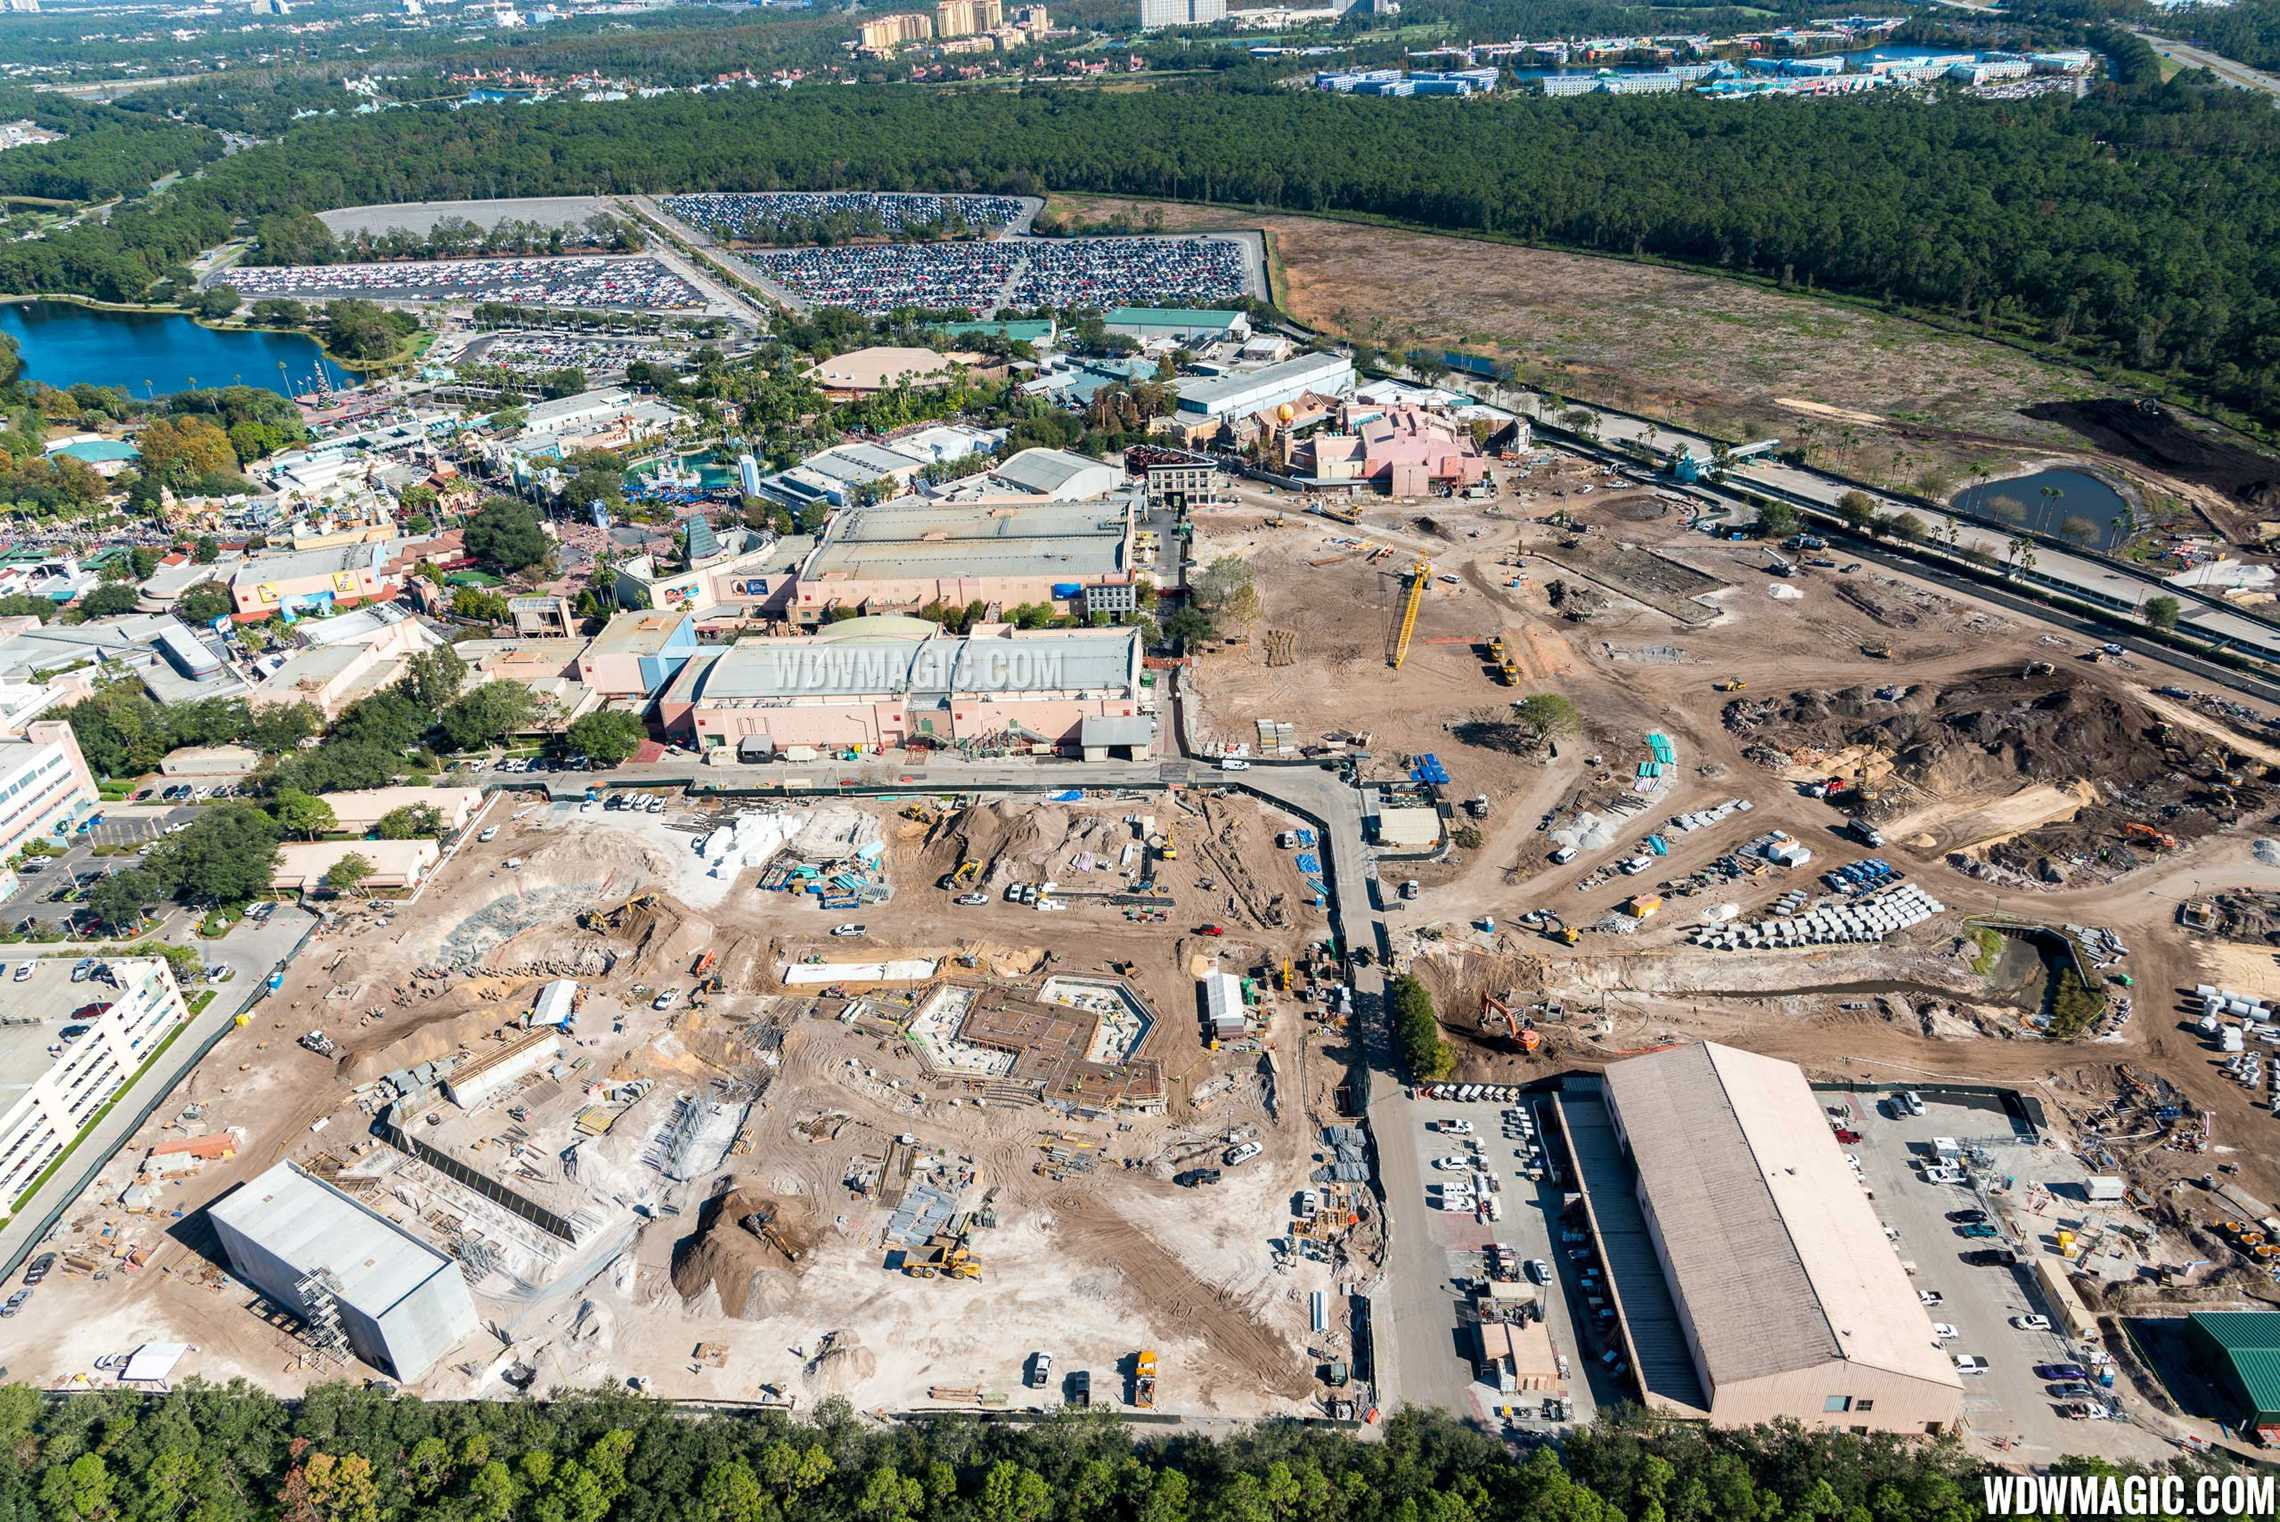 Photo by CJ Berzin @BerzinPhotography. Toy Story Land aerial view.